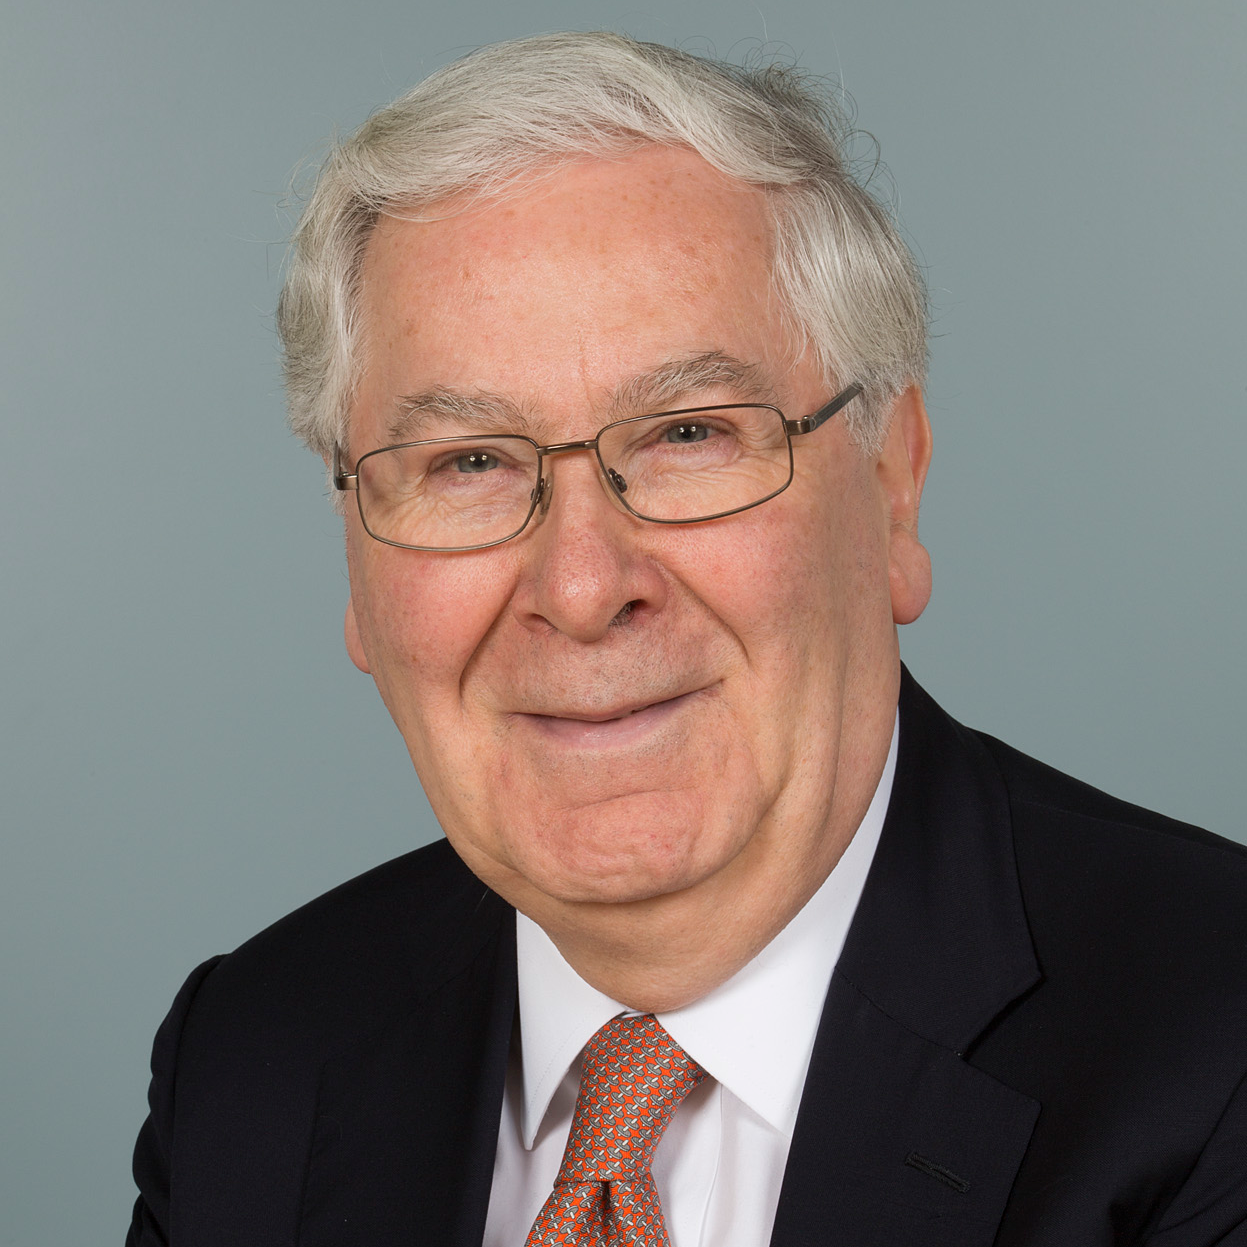 Mervyn King (Lord King of Lothbury)